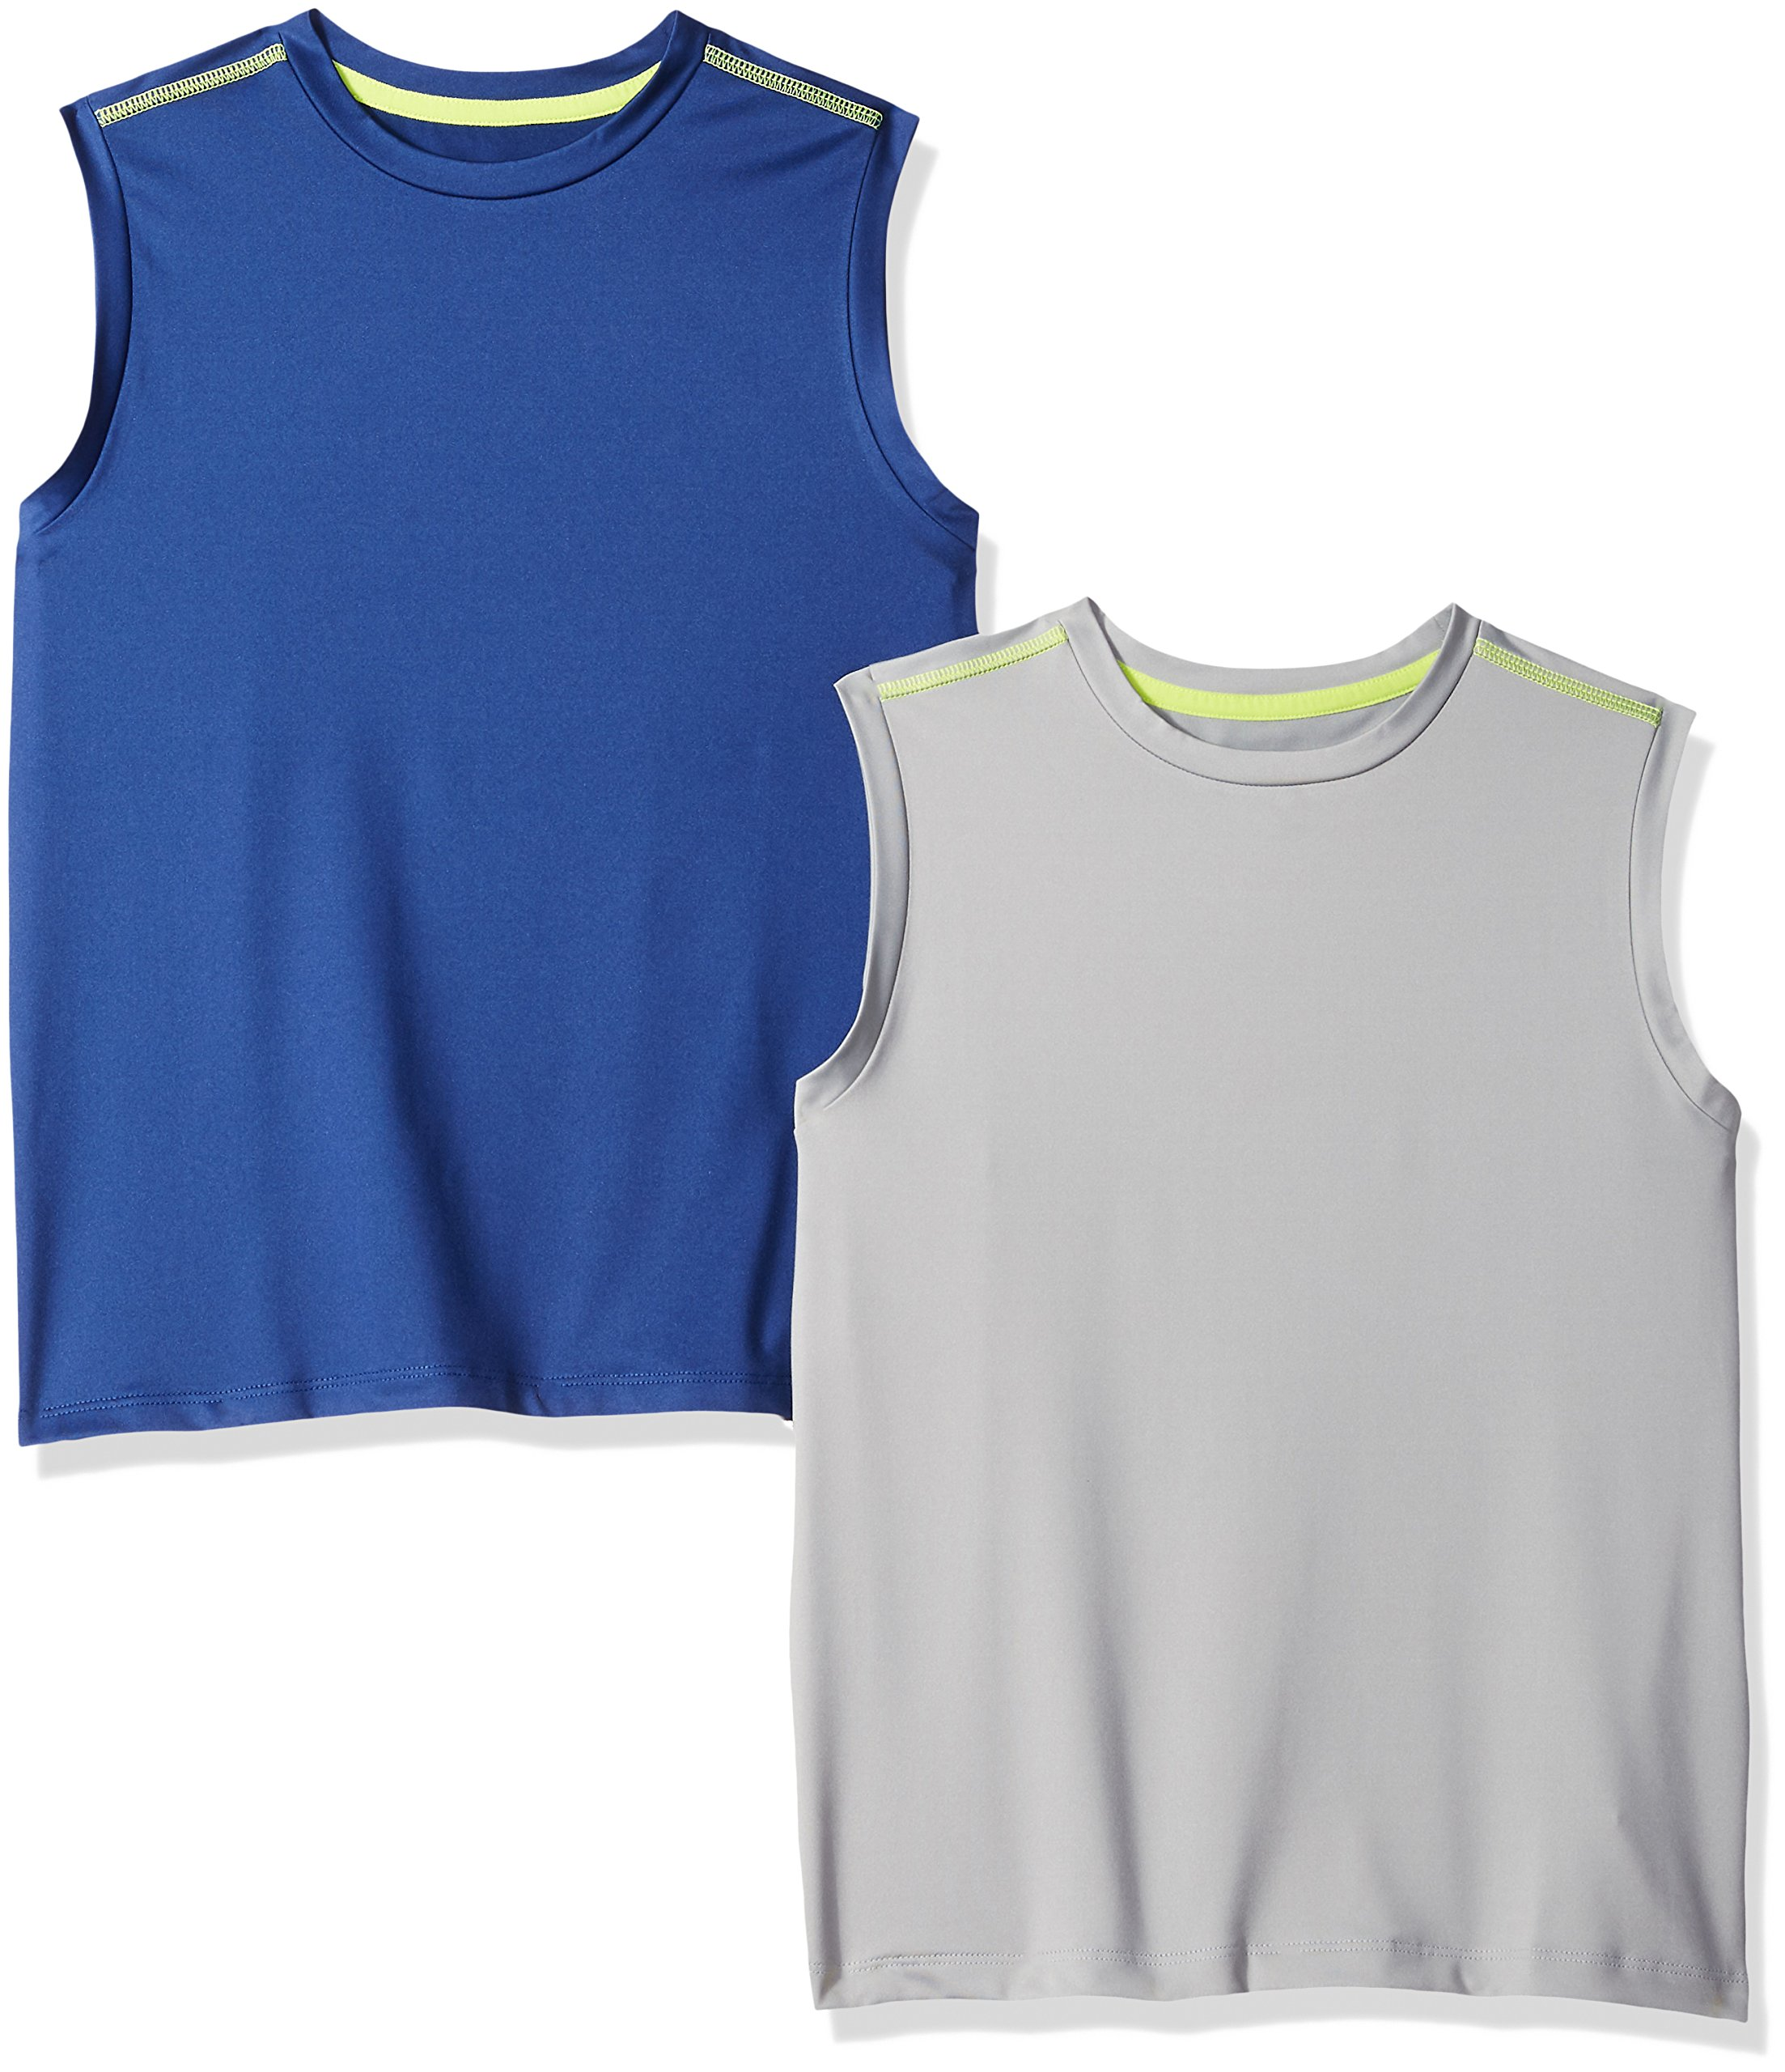 Amazon Essentials Boys' 2-Pack Active Muscle Tank, Navy/Grey, Medium